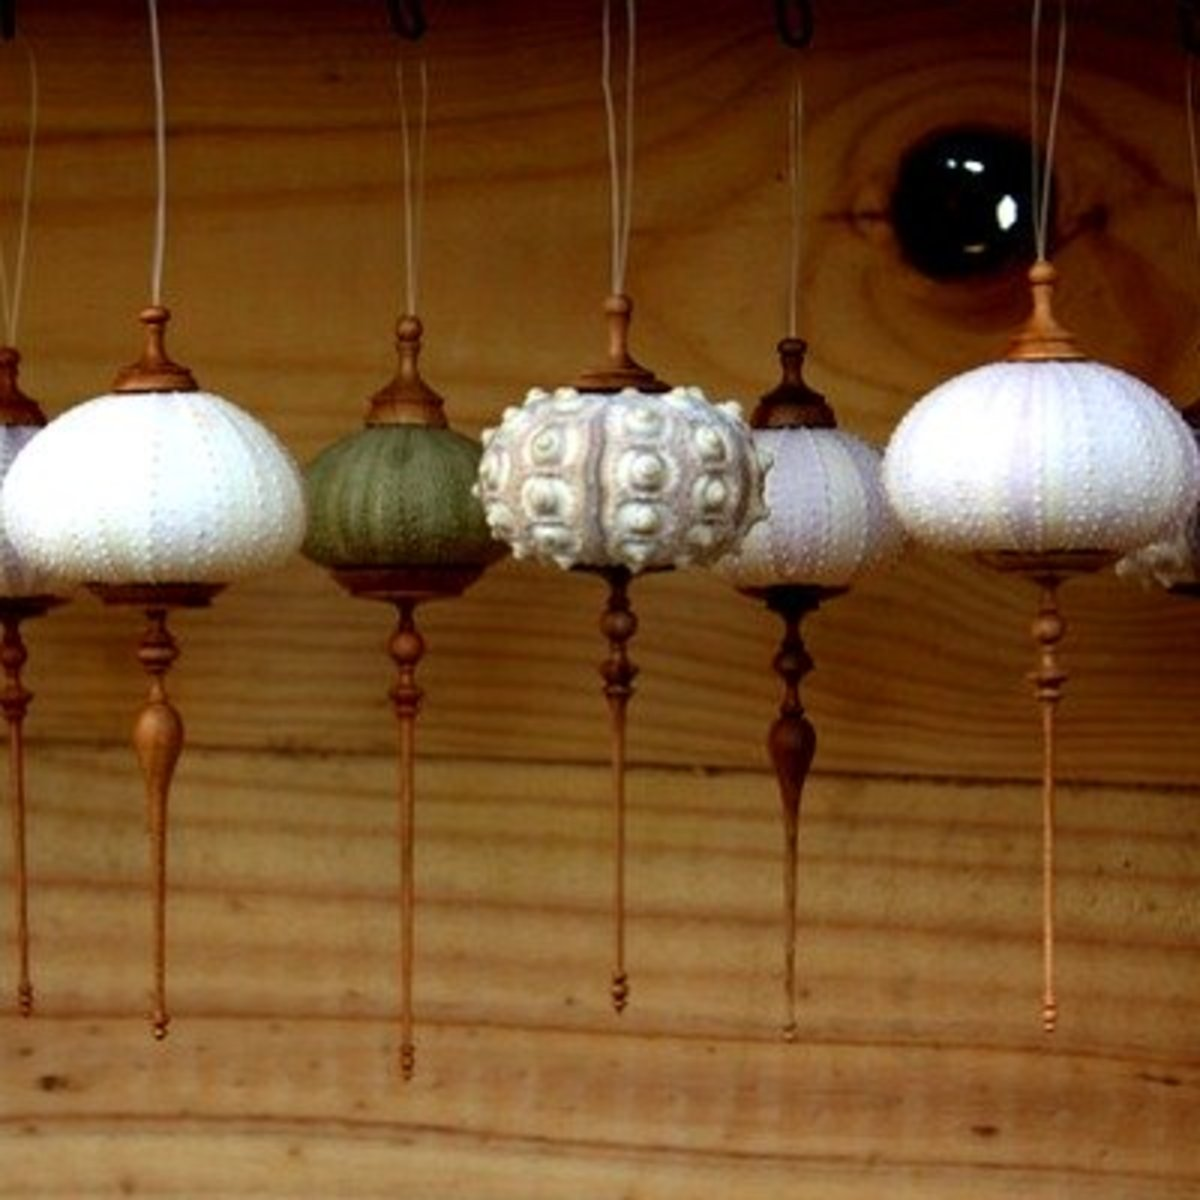 http://www.mermaidspurseseaglass.com/mermaids-purse/2010.12.18/sea-urchin-ornaments.html